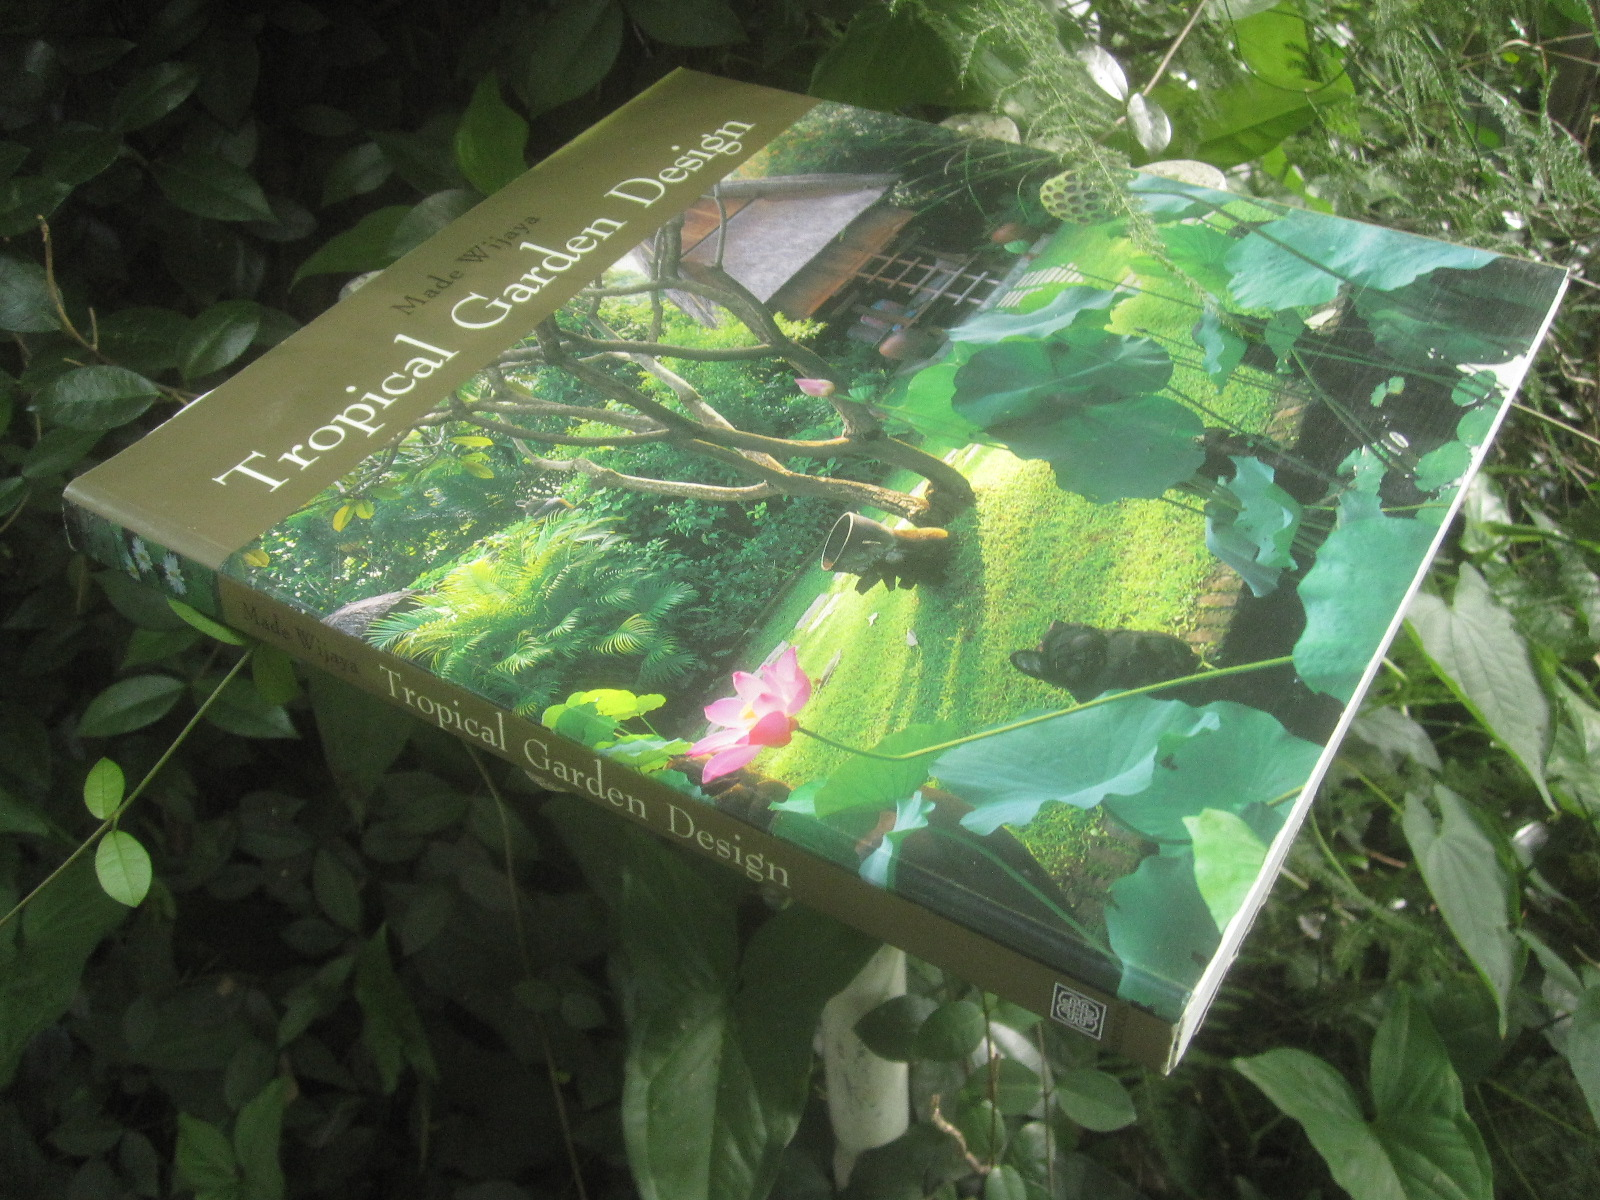 Tropical Texana: GARDEN BOOK REVIEW: TROPICAL GARDEN DESIGN